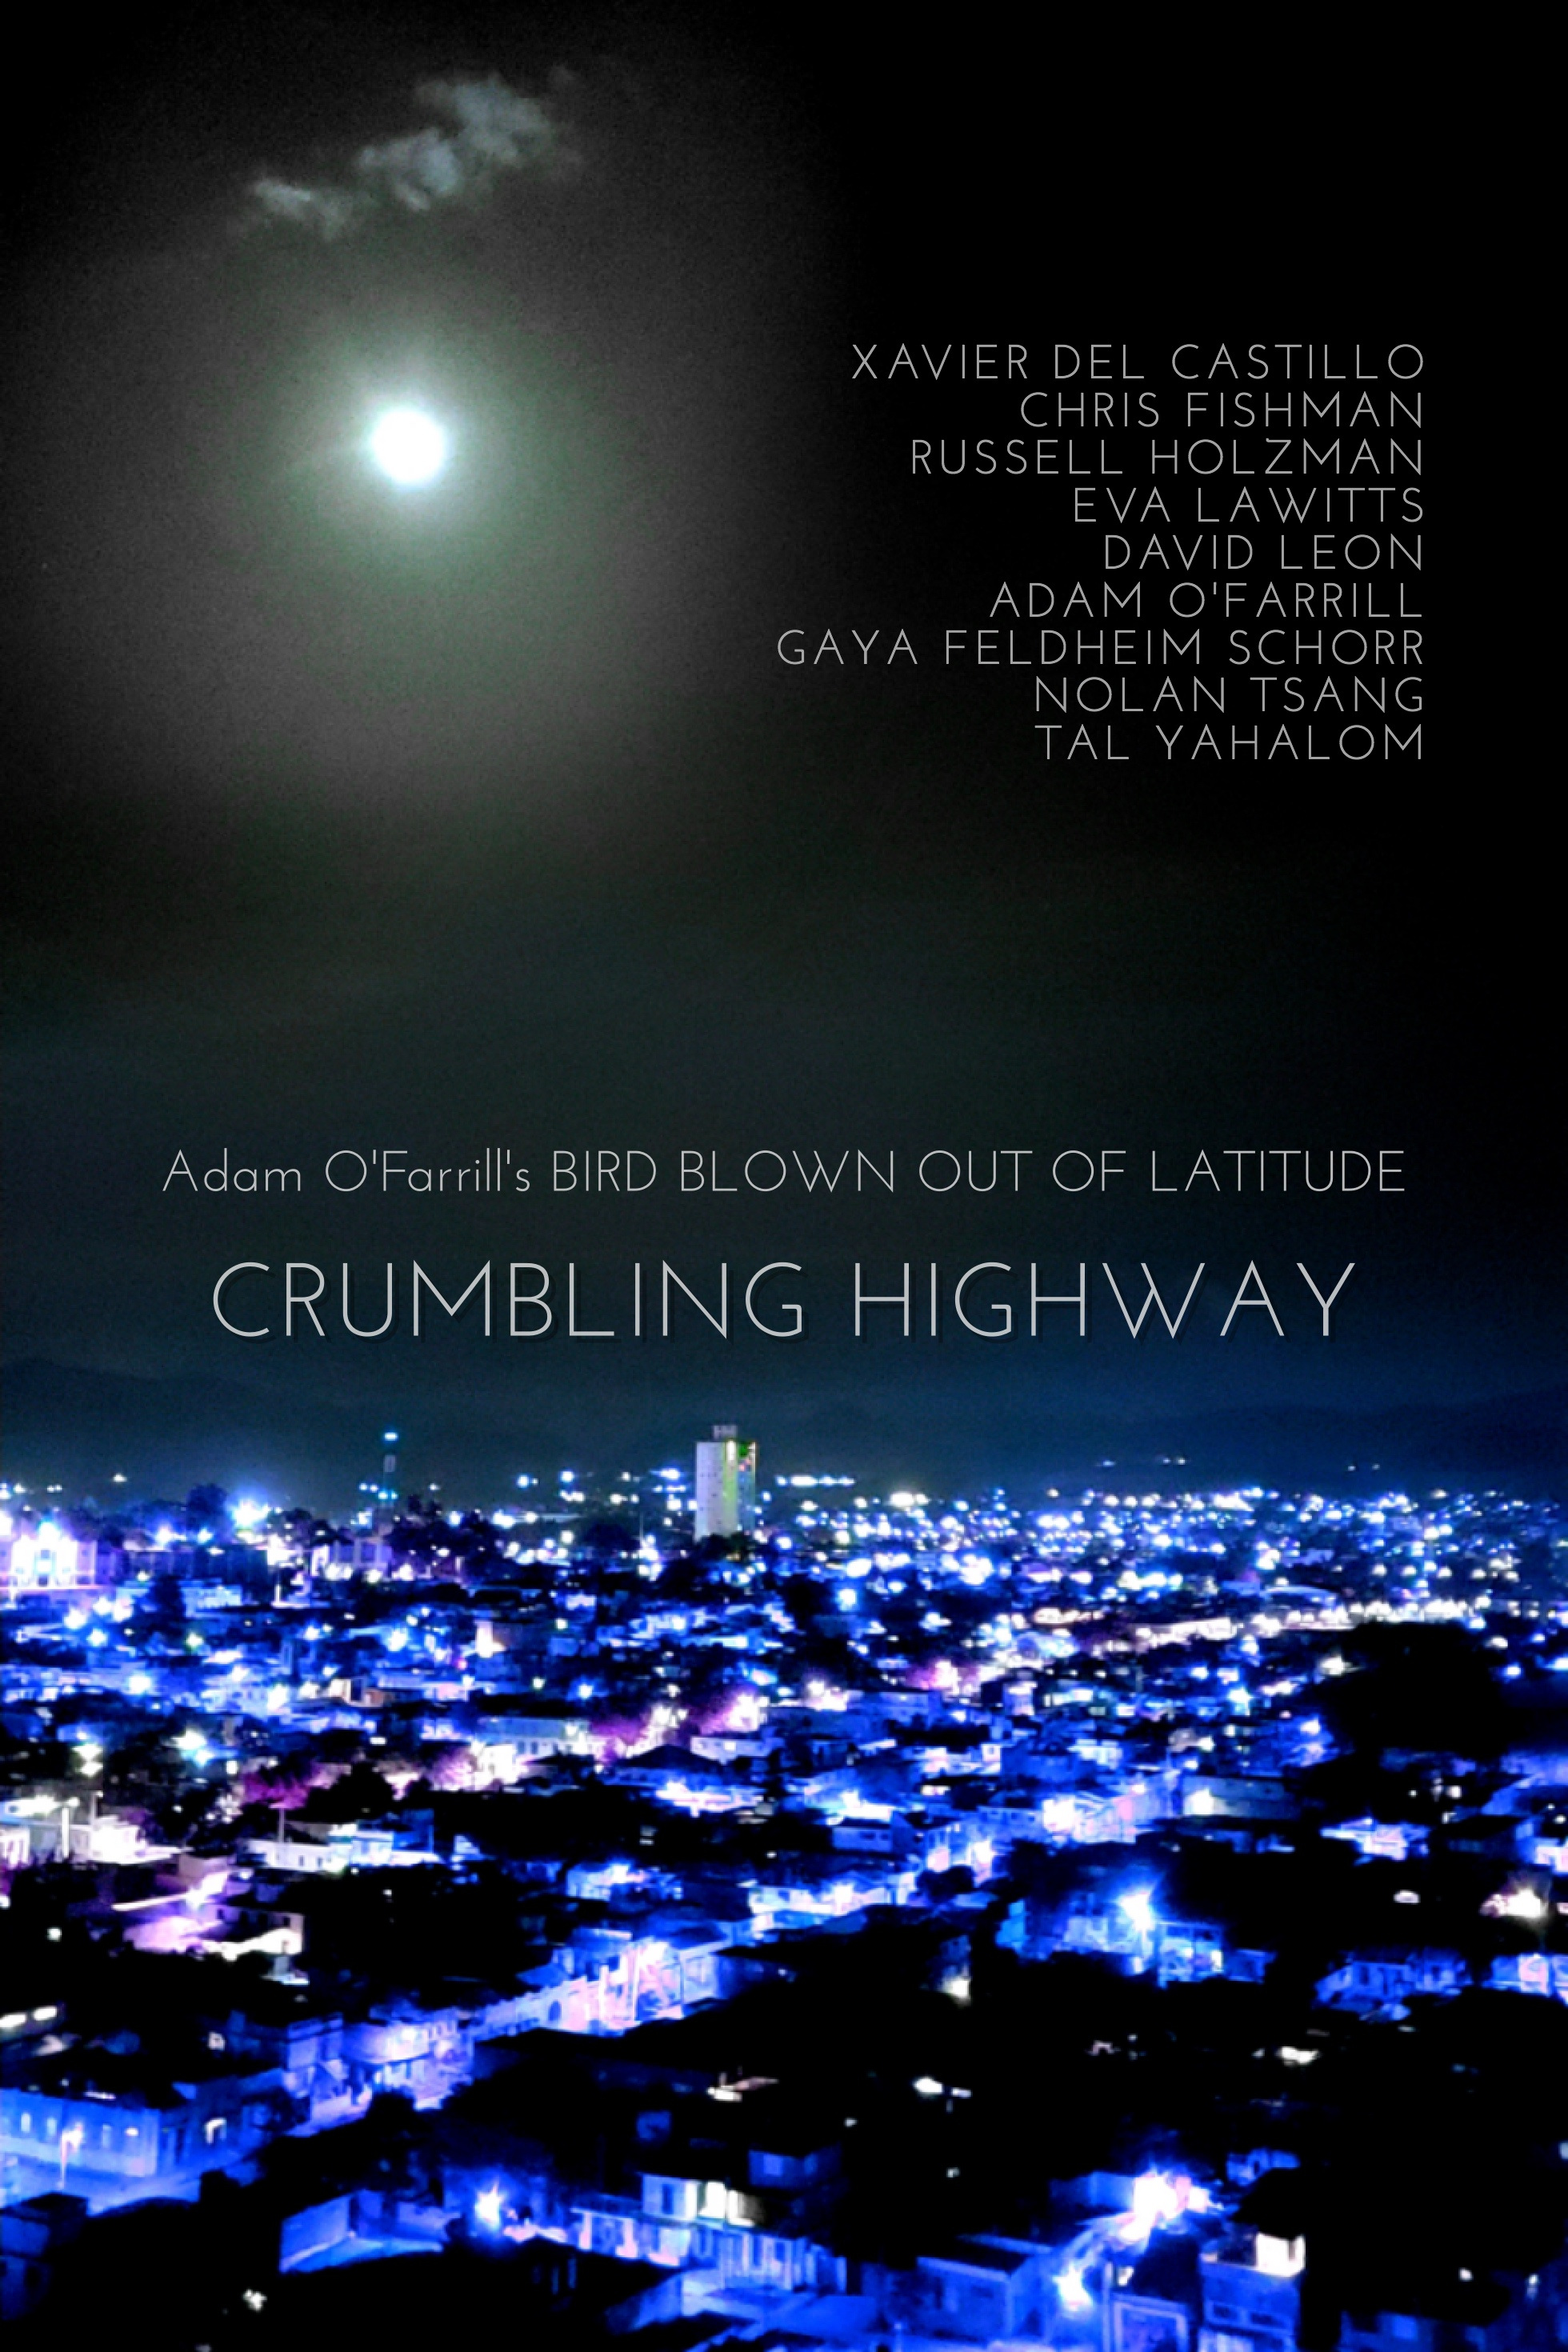 'Crumbling Highway' from Adam O'Farrill's  Bird Blown Out of Latitude (2019)